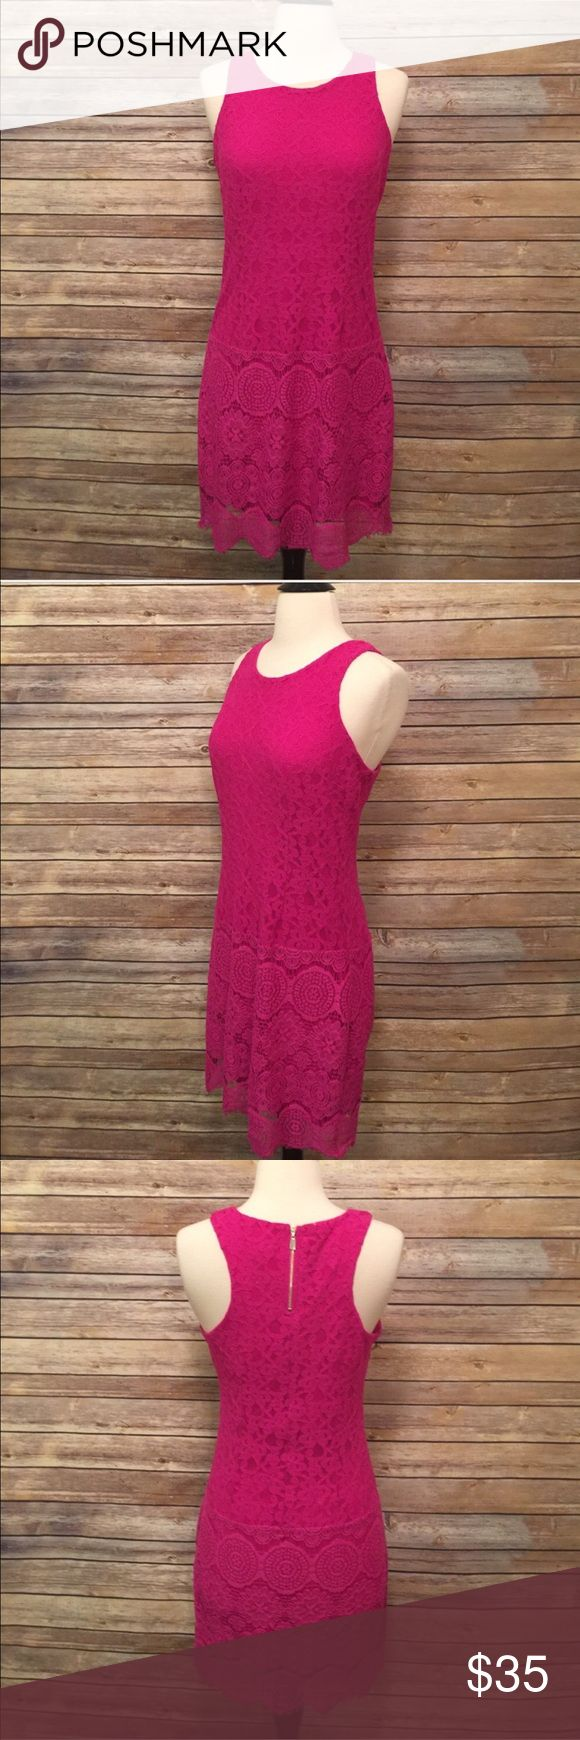 """Laundry by Shelli Segal Lace Dress Stunning Pink/Magenta lace dress by Laundry by Shelli Segal.  In excellent condition! Bust 36"""" Length 34"""" Laundry By Shelli Segal Dresses"""